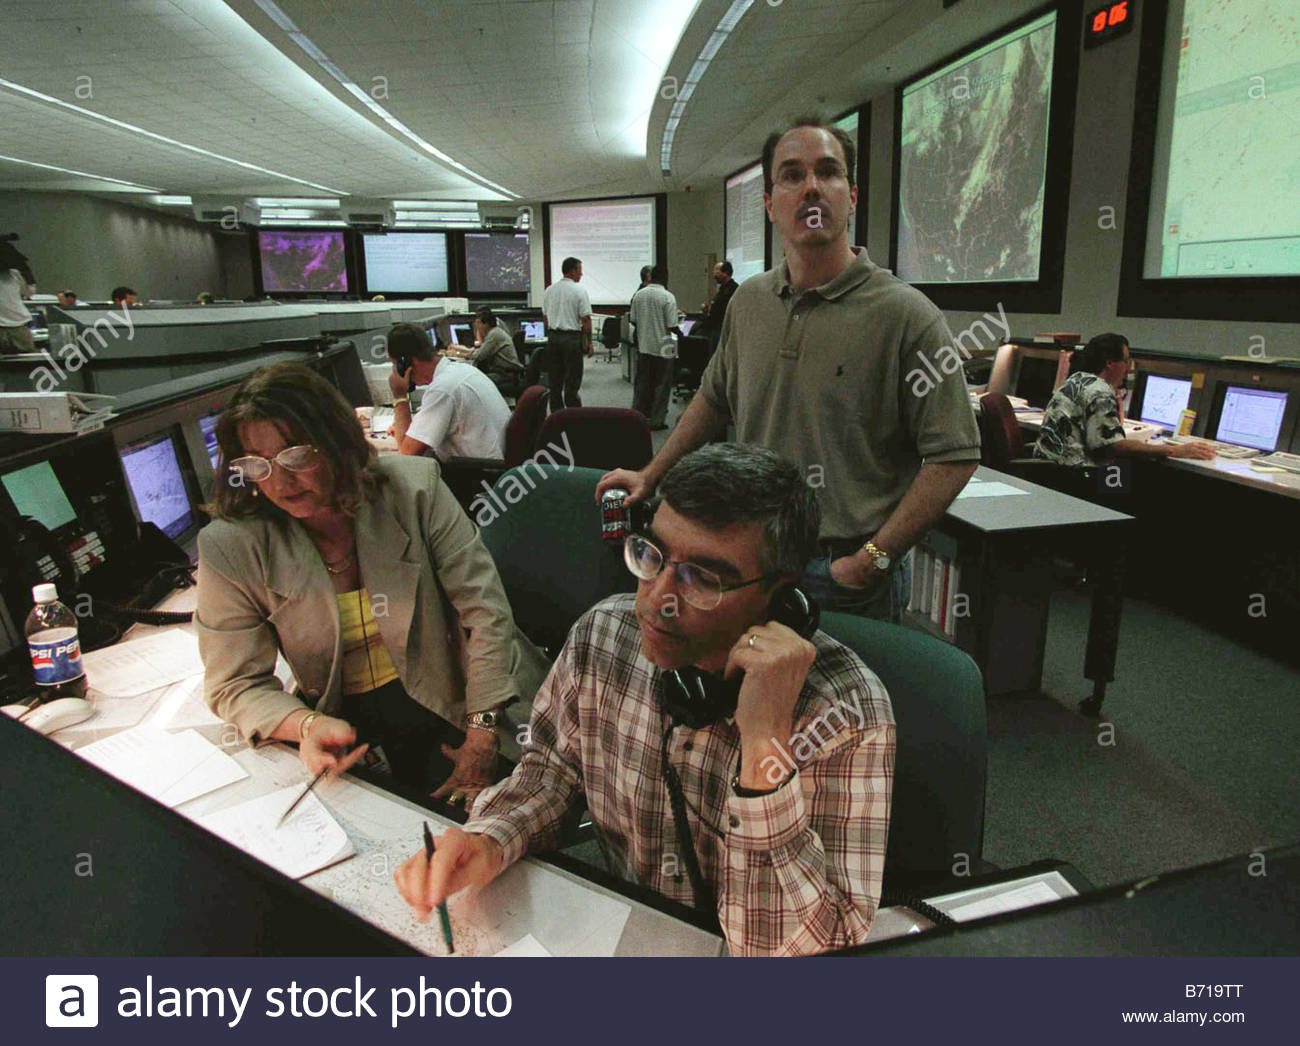 5 11 01 FAA COMMAND CENTER Stephanie Runyon and Joe Hof of the severe weather unit both seated and Steve McMahon - Stock Image